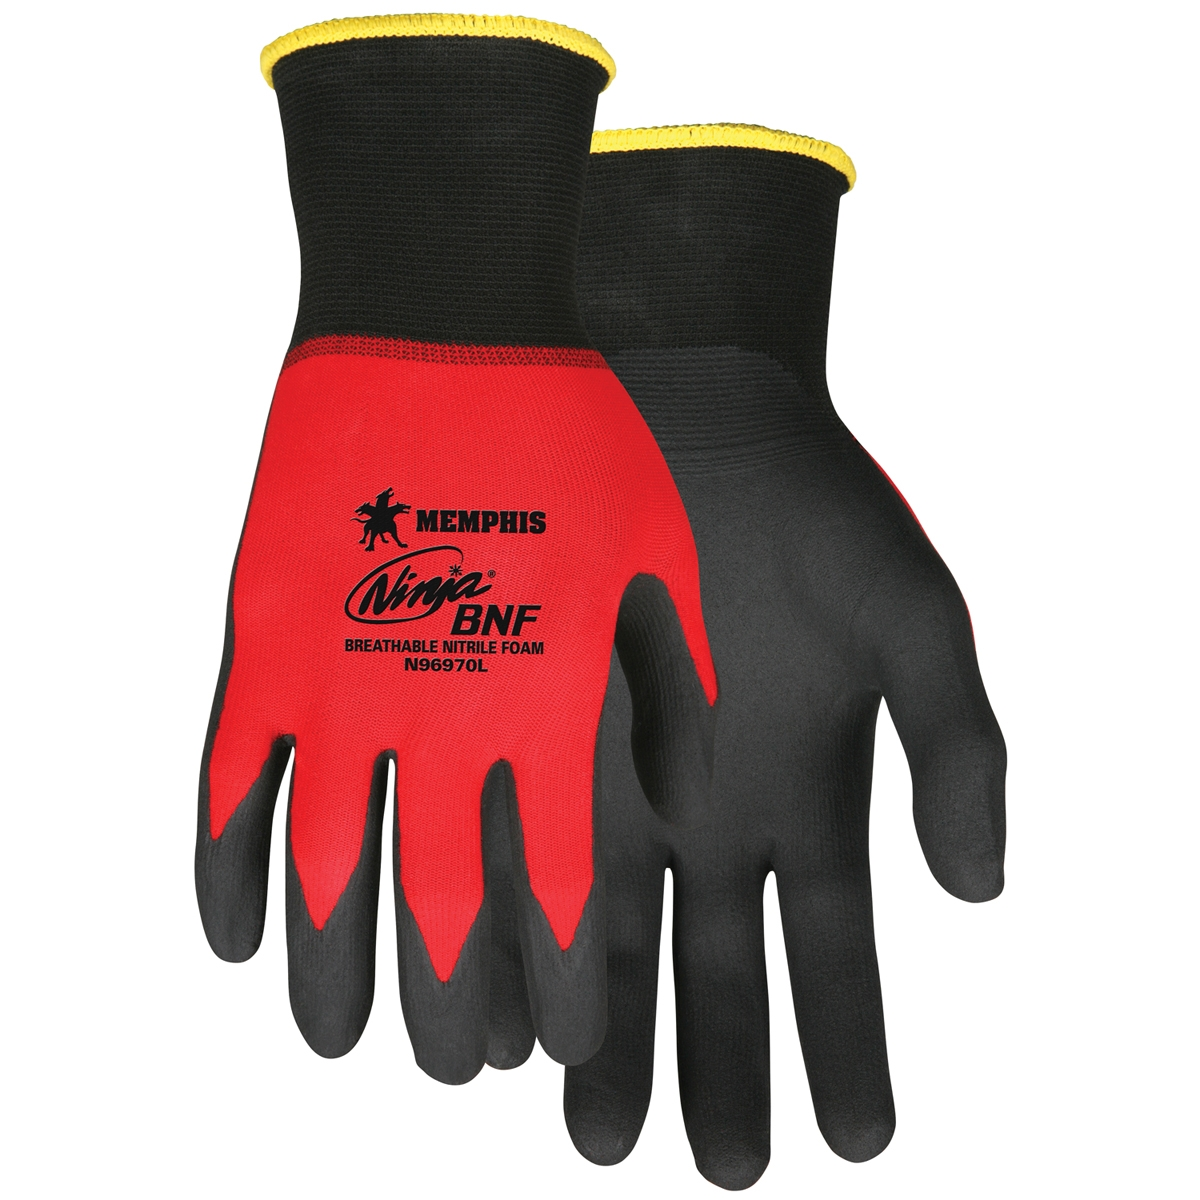 N96970 - MCR Safety Memphis Ninja® BNF, 18 Gauge Red Nylon/Spandex Shell, Black Coated Palm and Fingertips